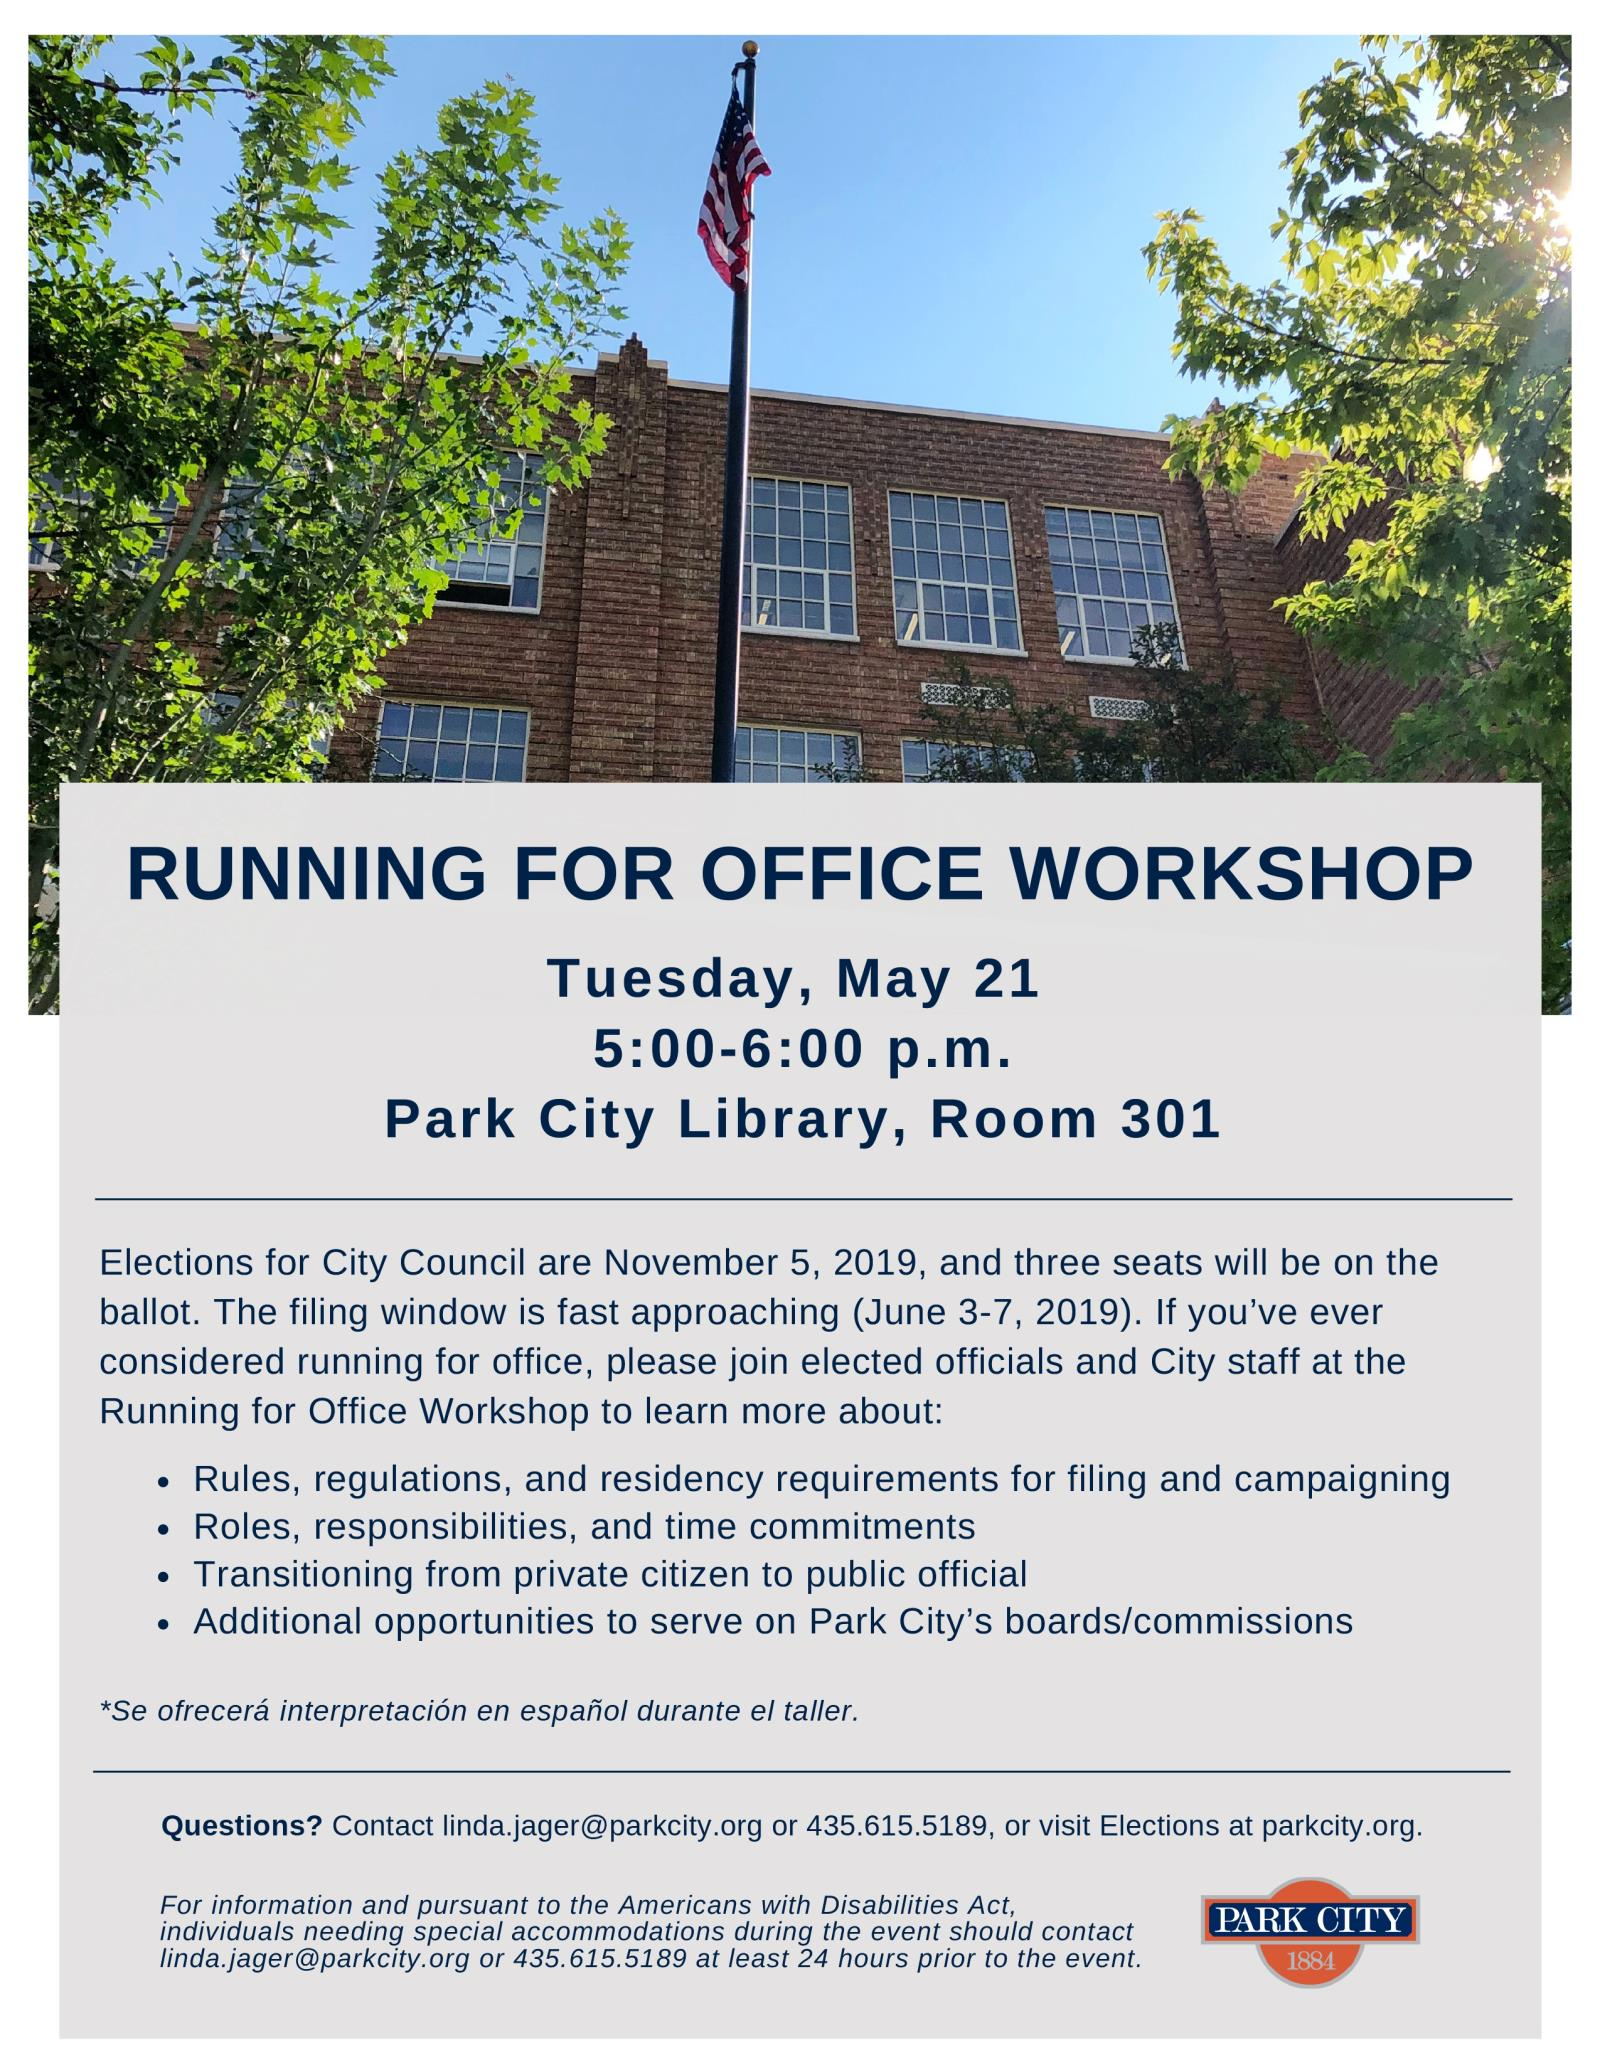 Running for Office Workshop 2019